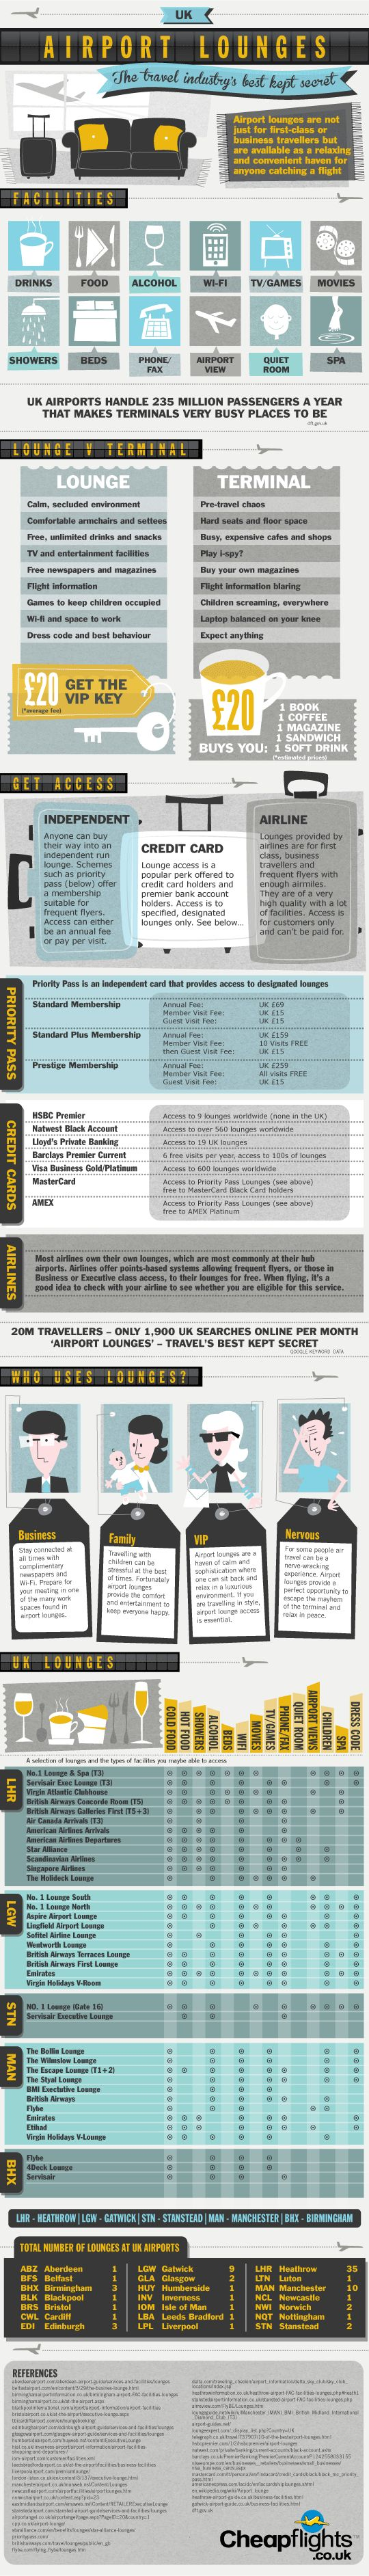 airportlounges_infographic_540